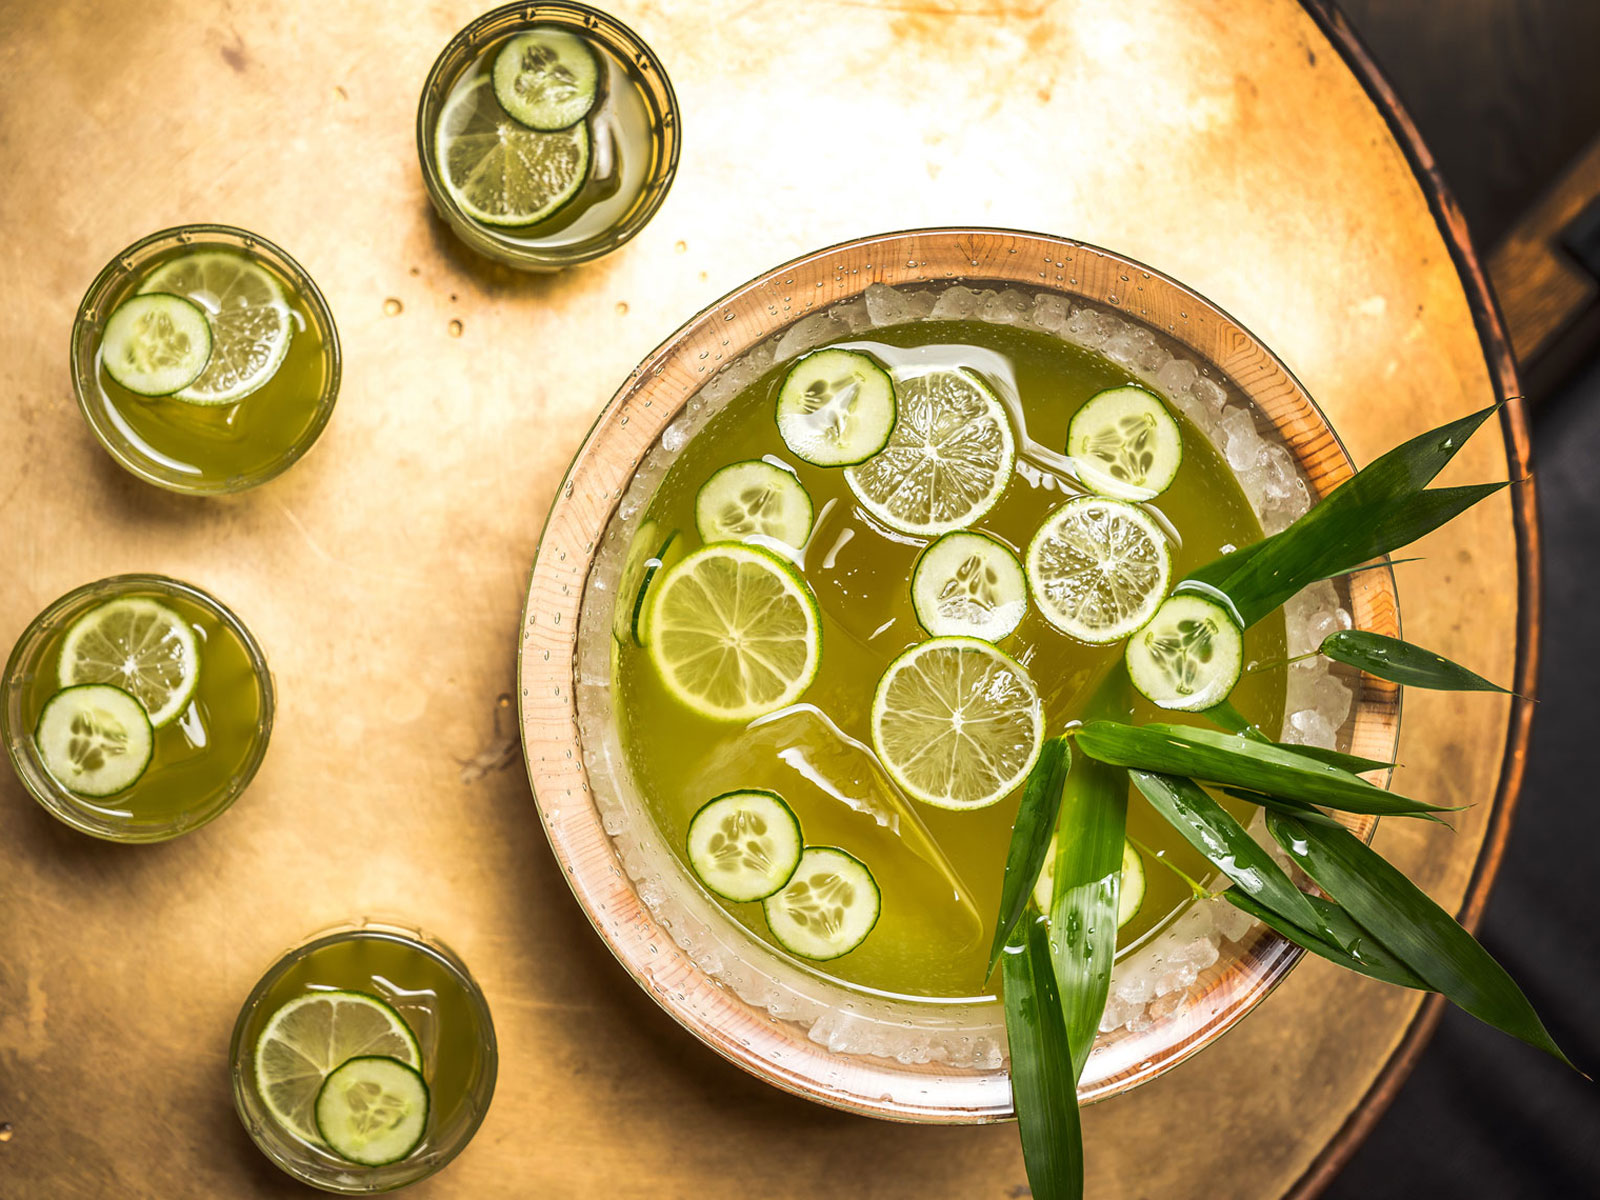 Make This Japanese-Inspired Summer Punch and Claim Your Title as the World's Best Party Host